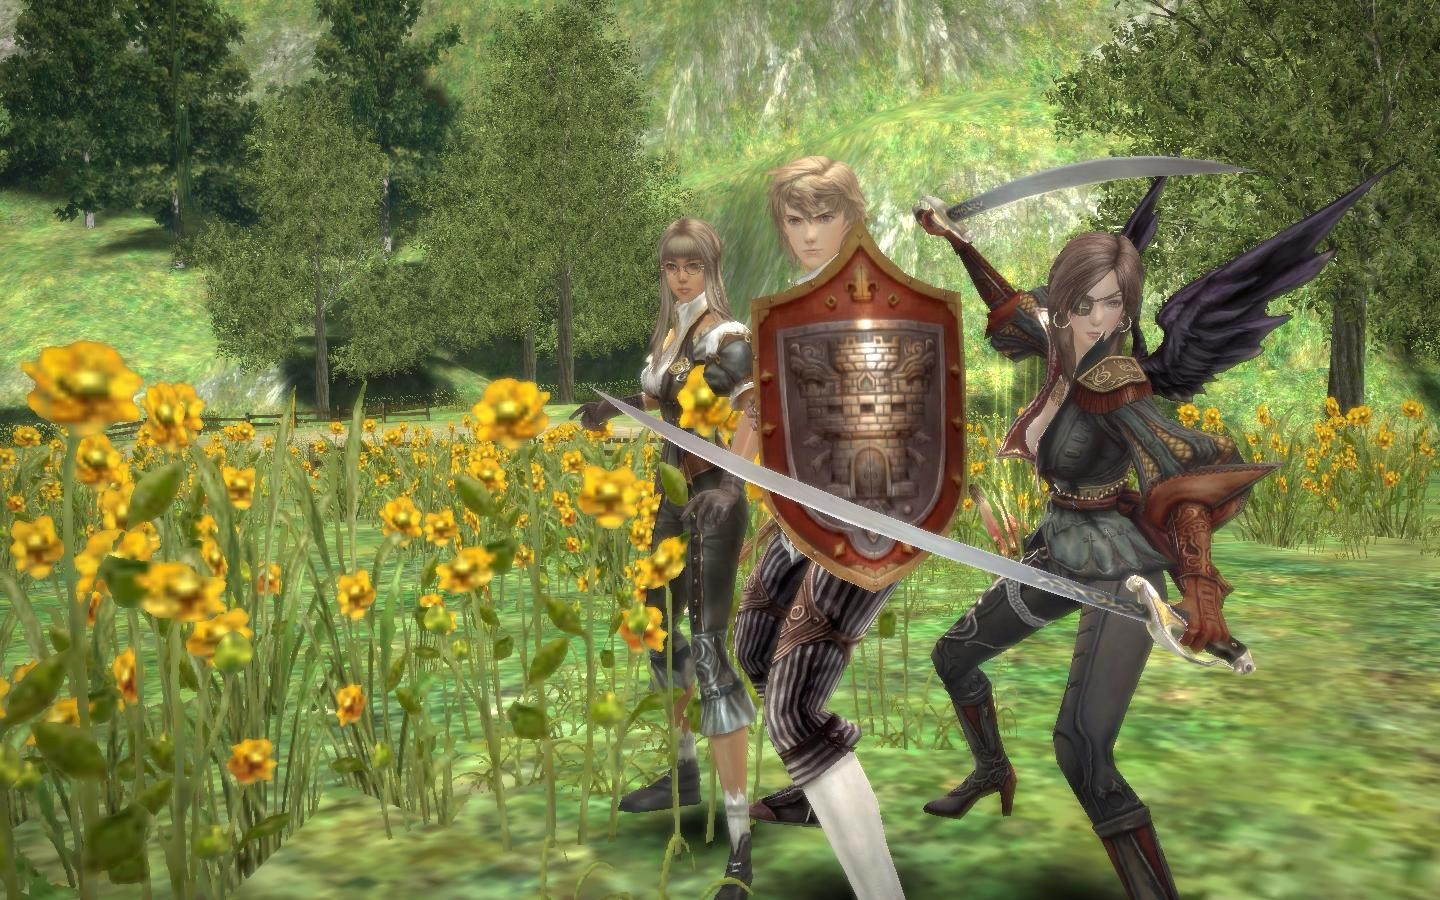 Granado Espada Online - Picking Flowers?